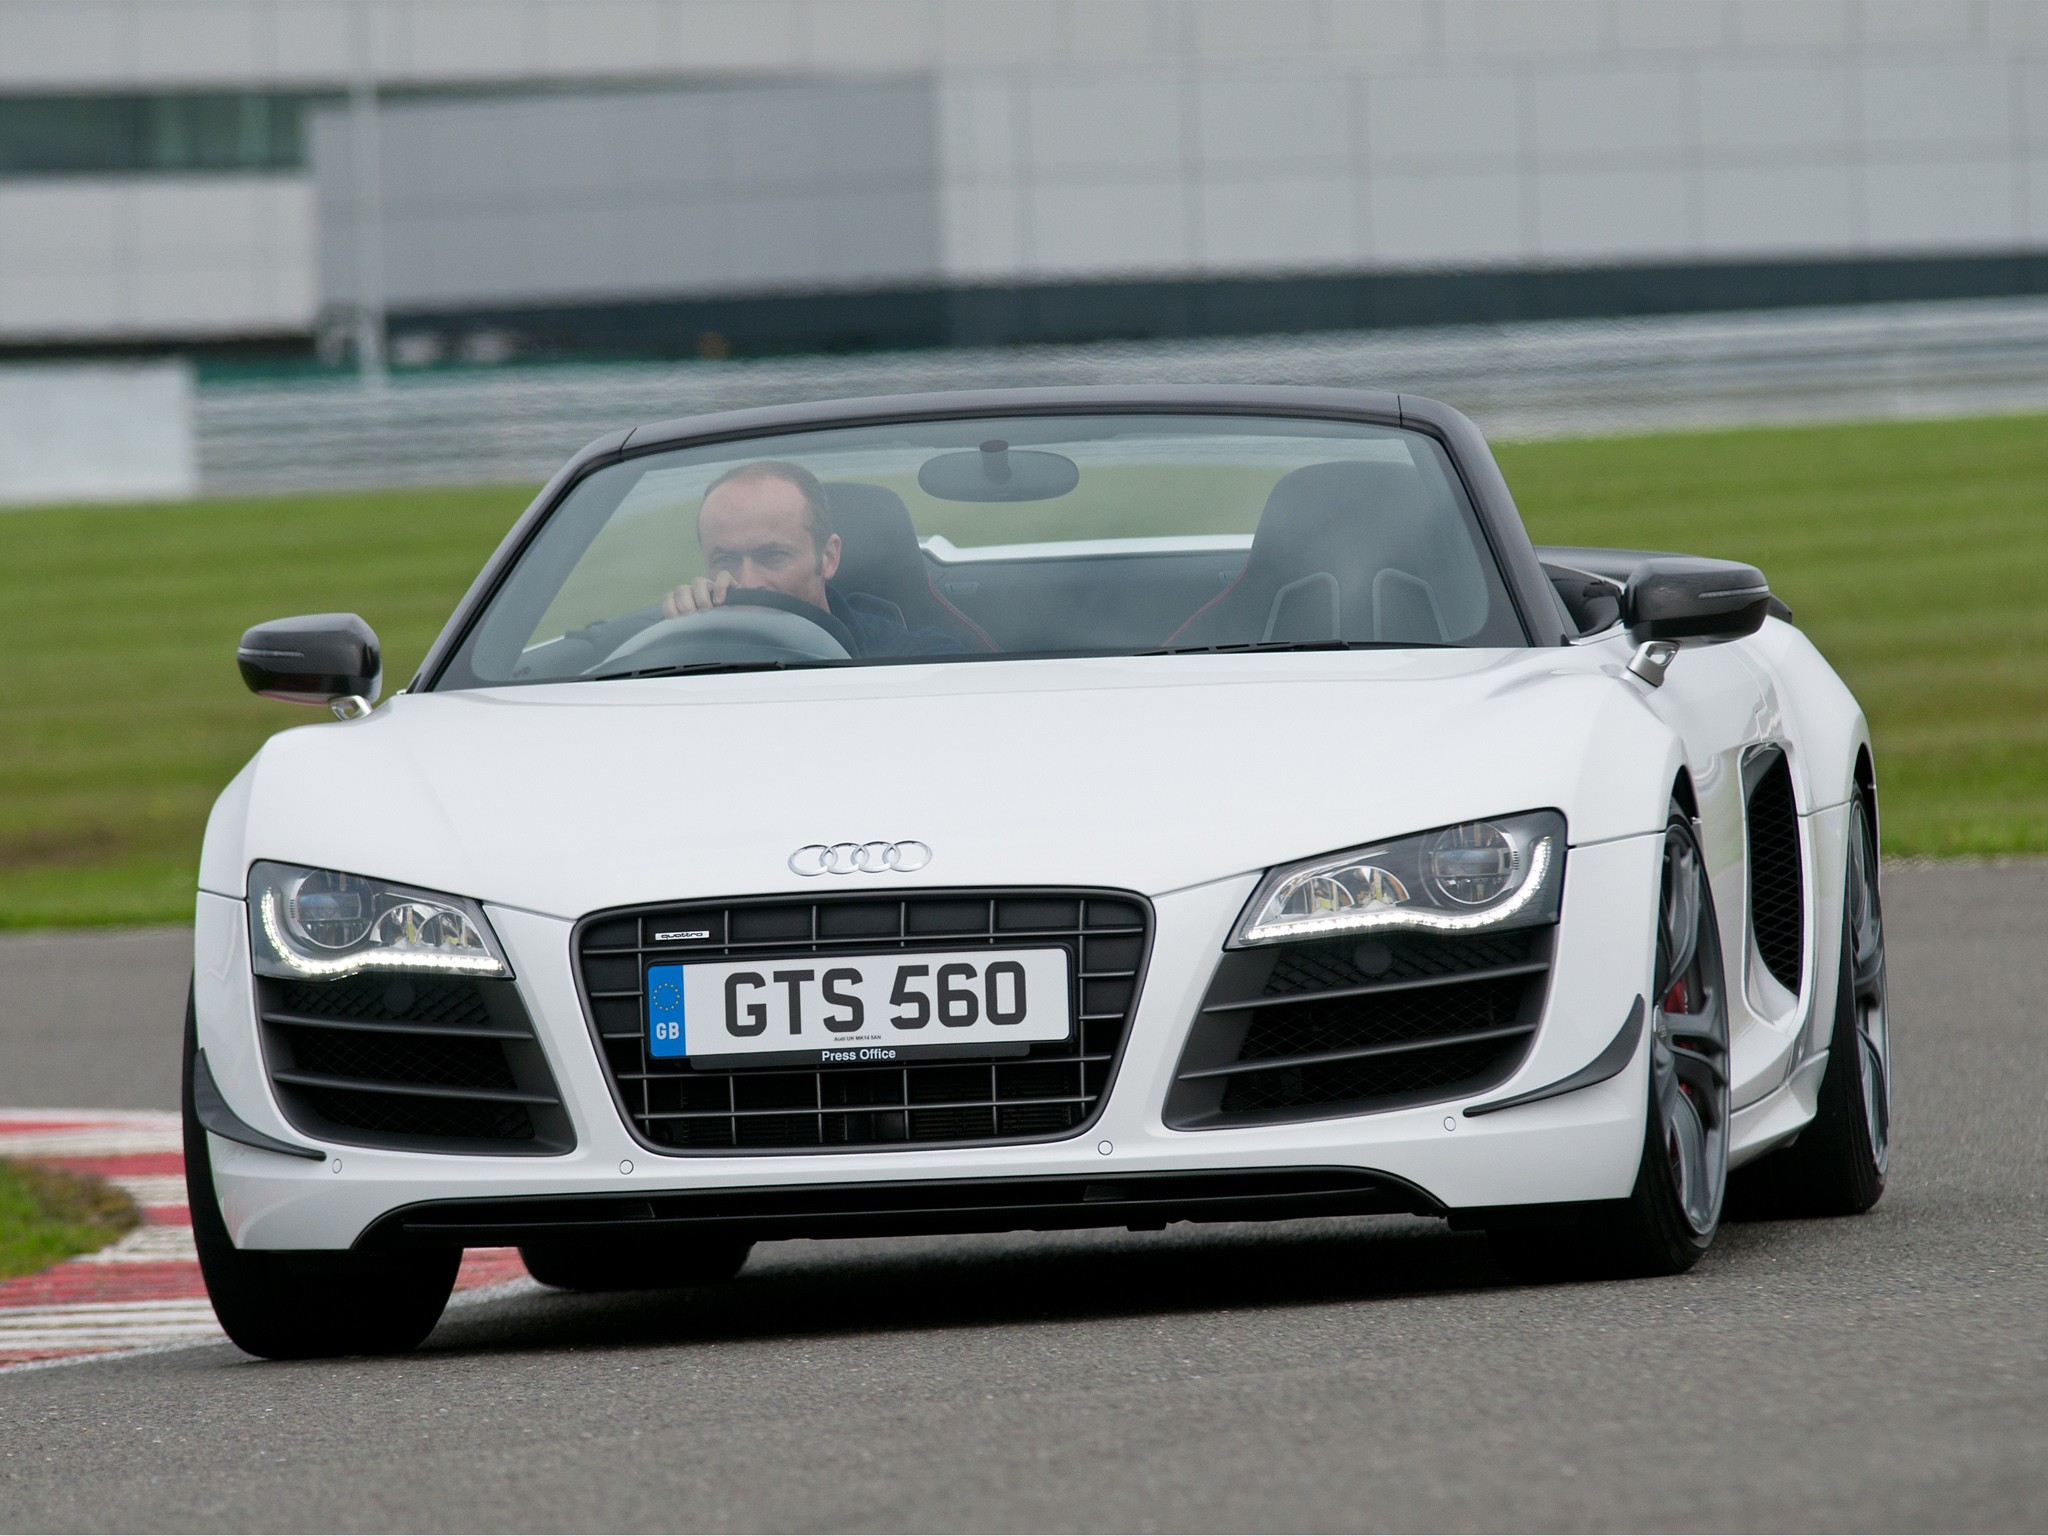 Audi R8 GT 2012 Widescreen Exotic Car Image #16 of 36 : Diesel Station